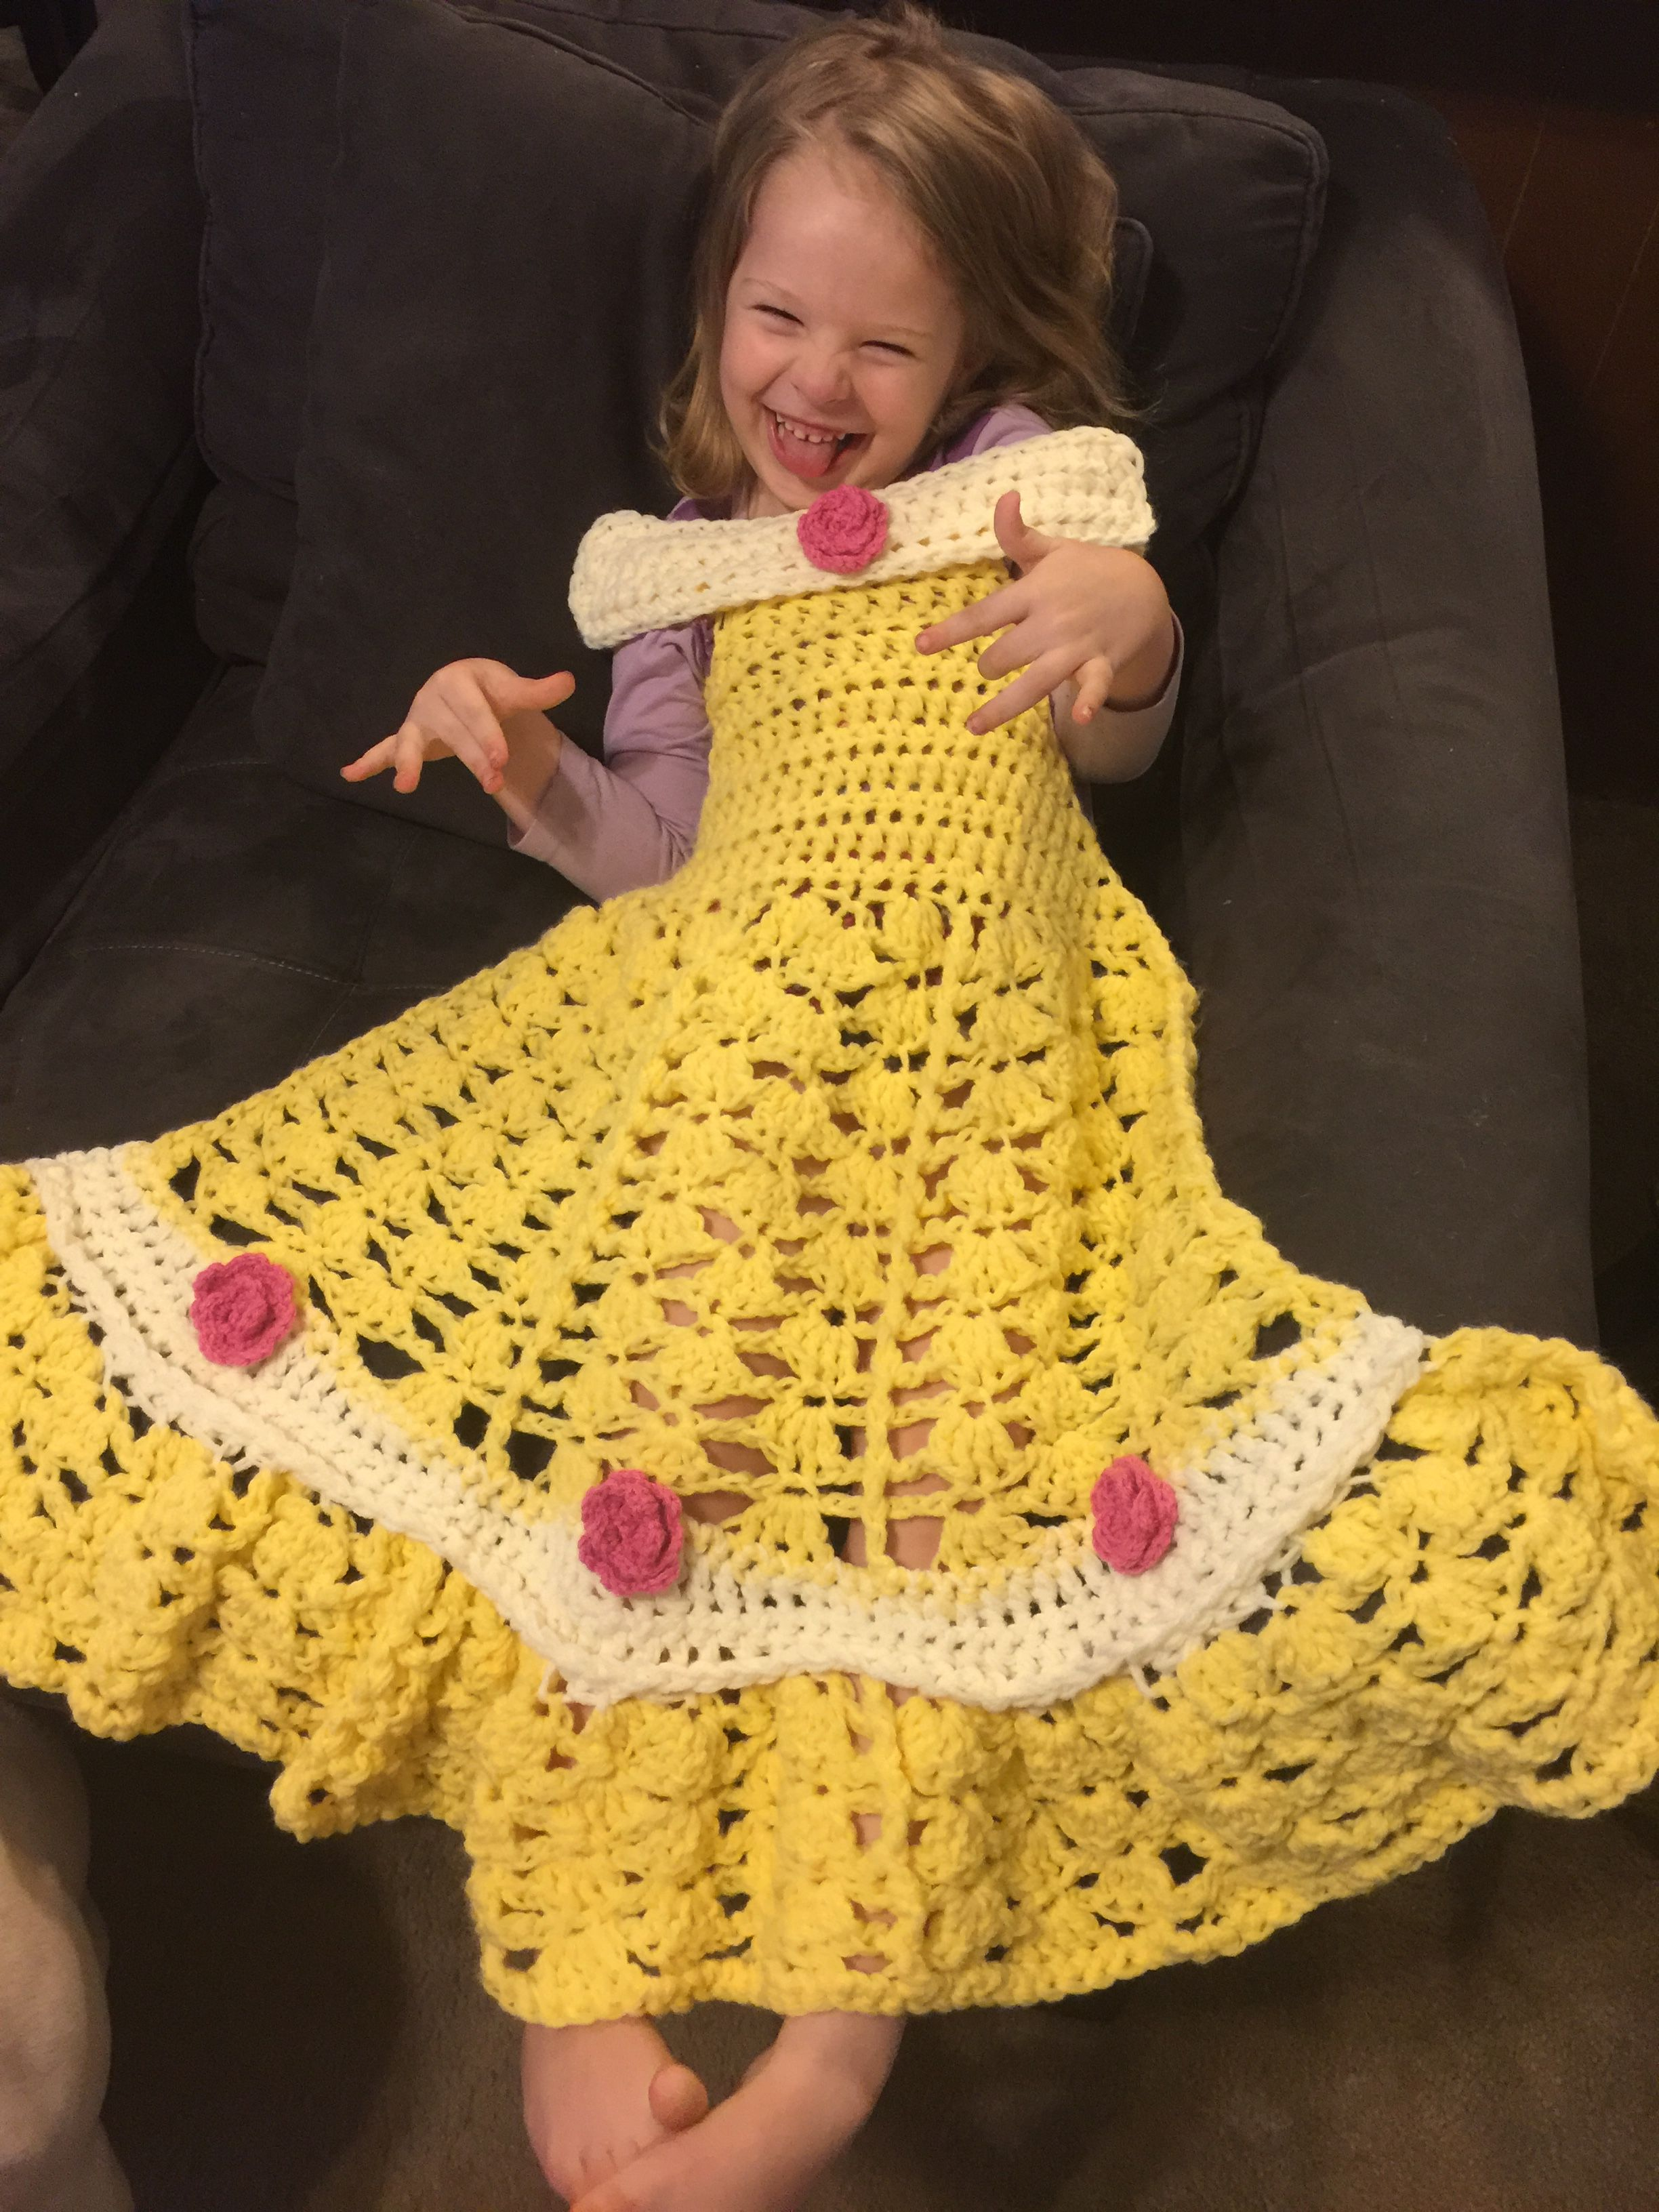 Princess belle dress blanket so cute and fun now for sale in my